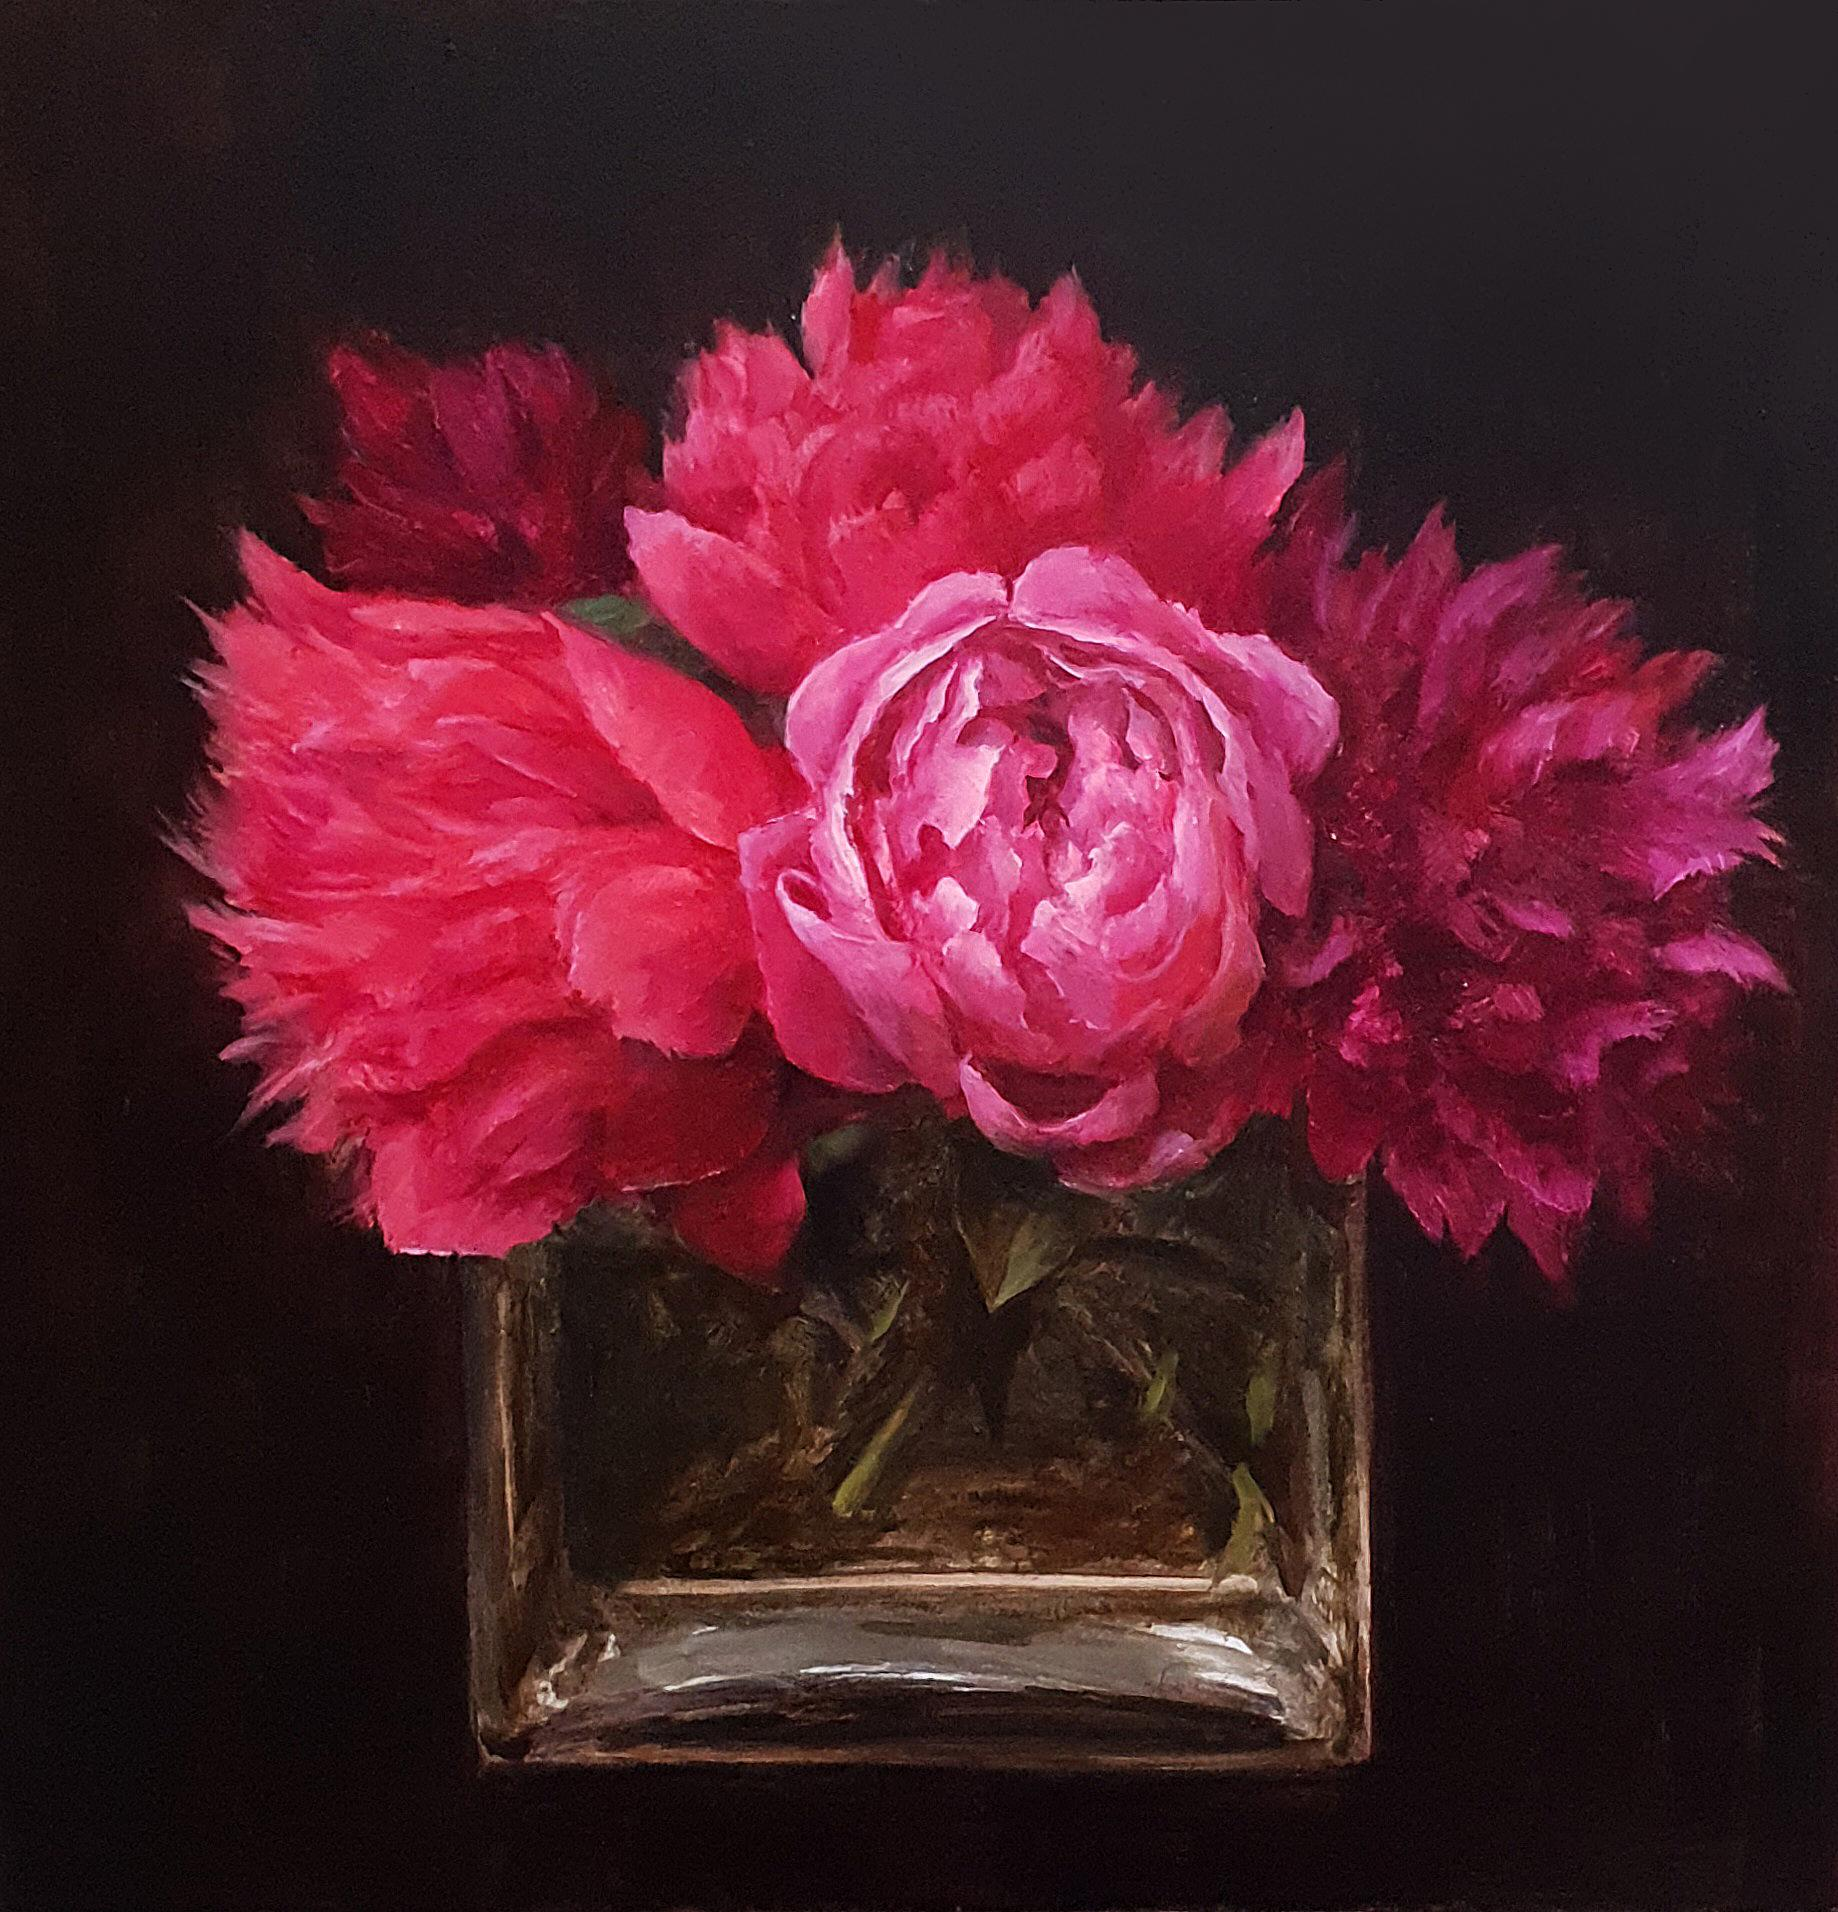 Pretty in Pink- 21st Century Still-life painting, Pink Peonies in a Square Vase